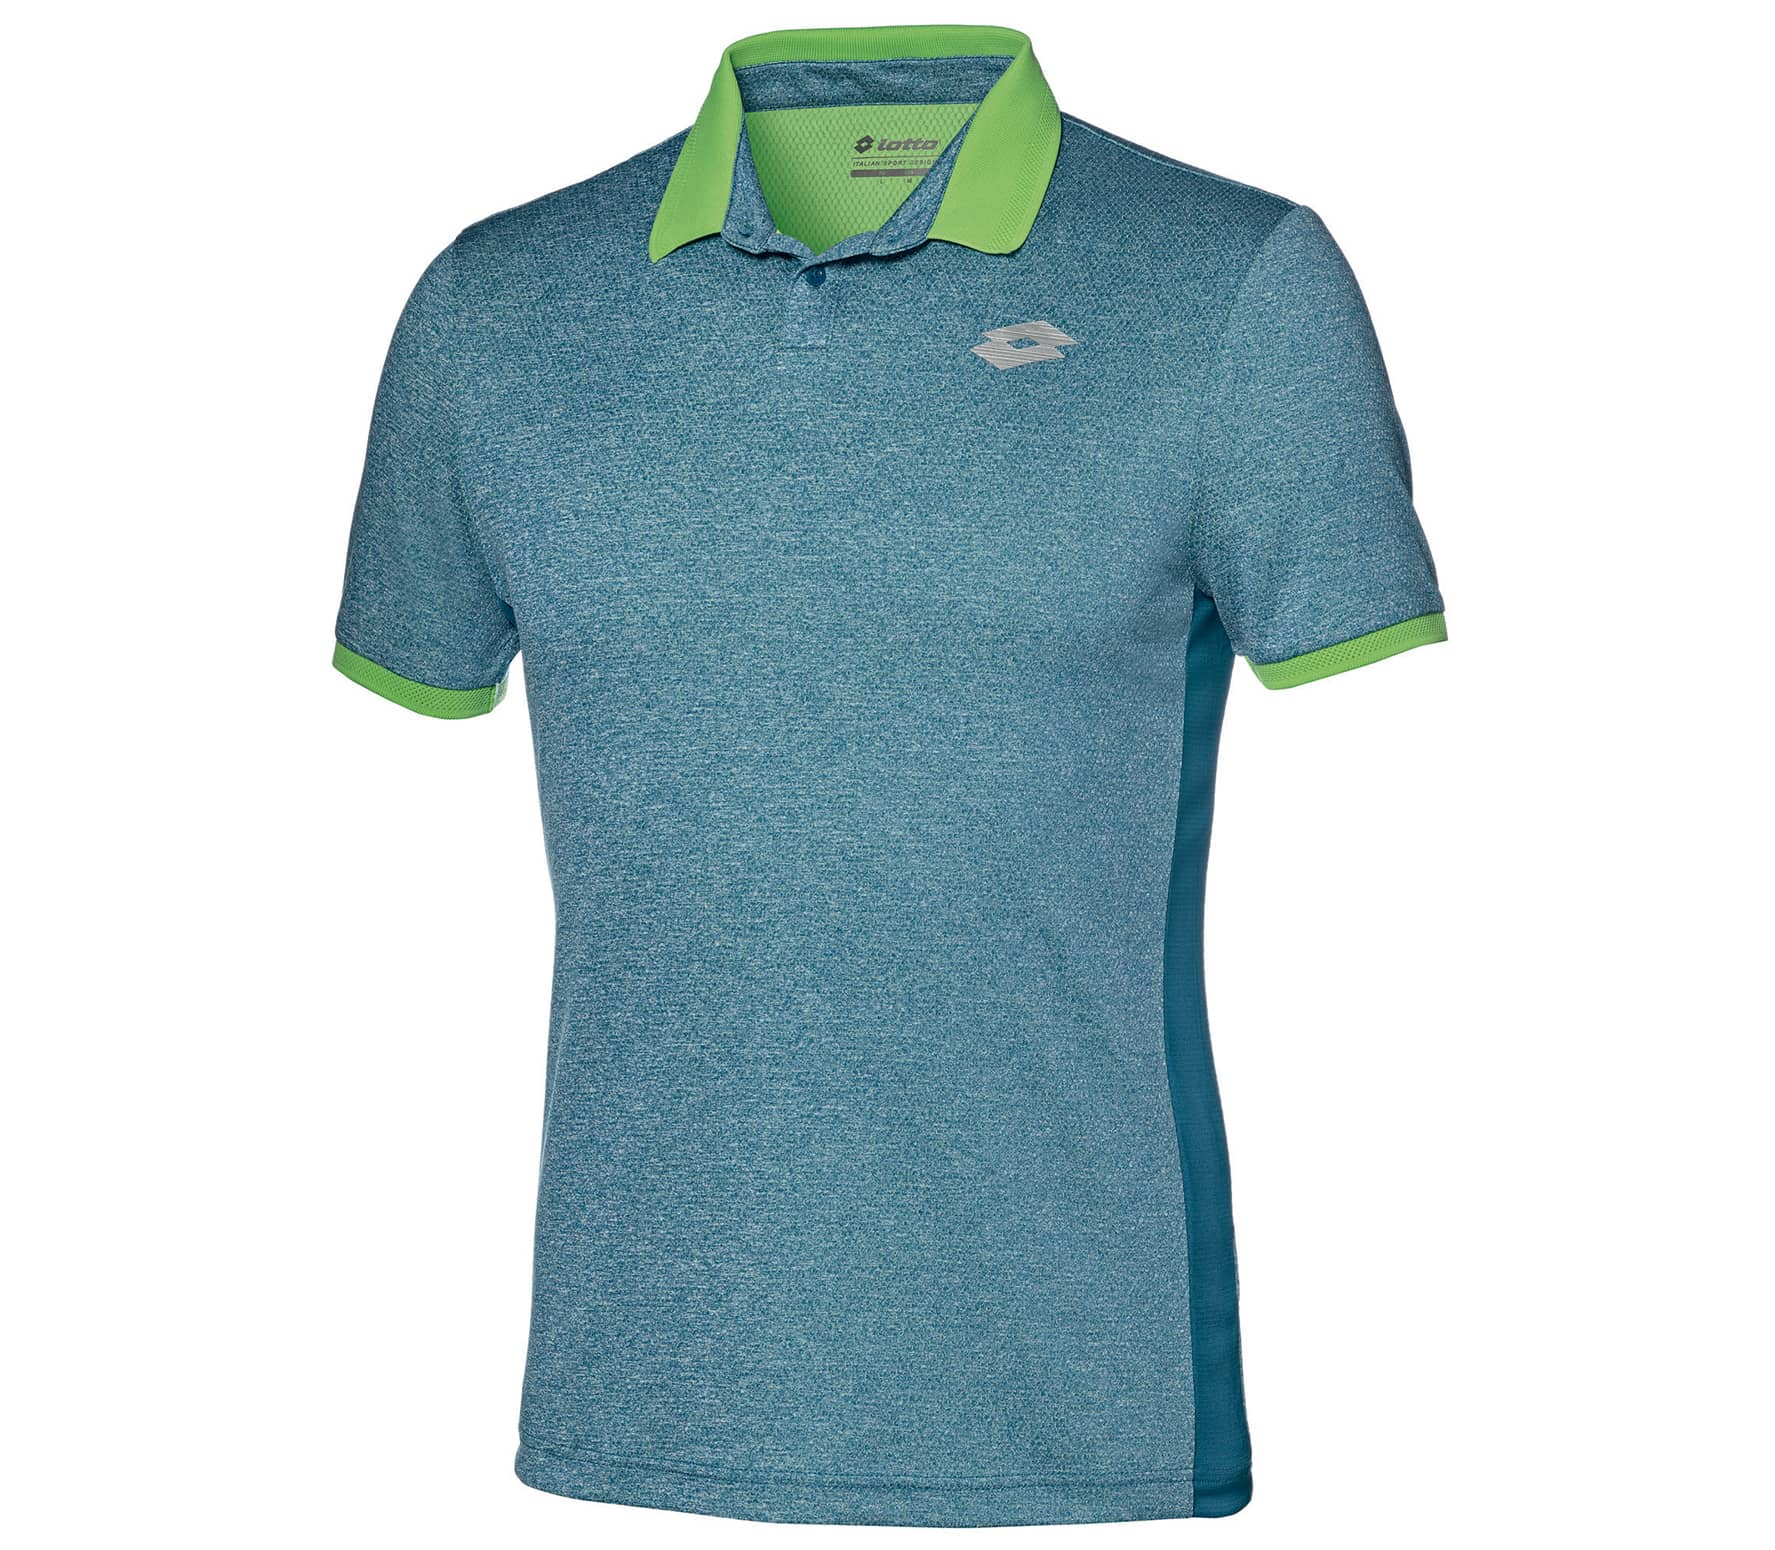 Lotto Tennis Clothes Uk